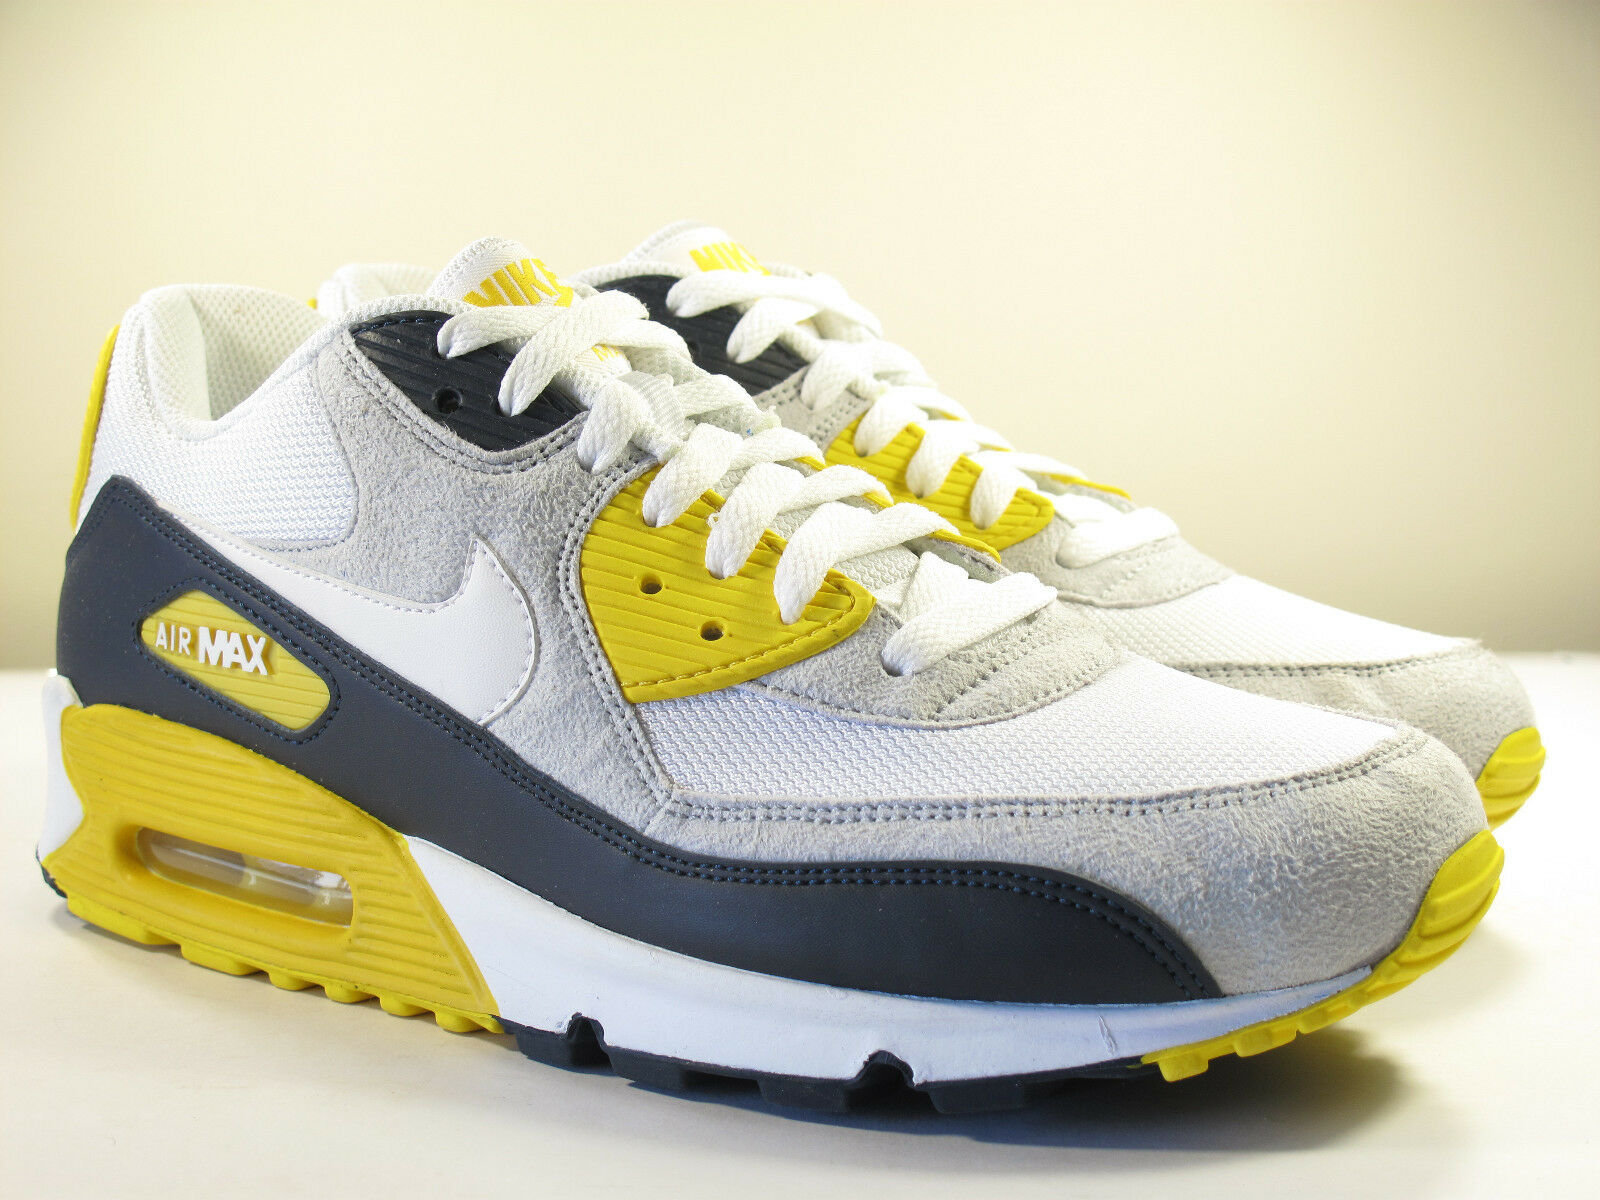 Il sergente nike air max 90 2011 campione giallo 9 infrarossi hyperfuse og 1 180 95 atmos 98